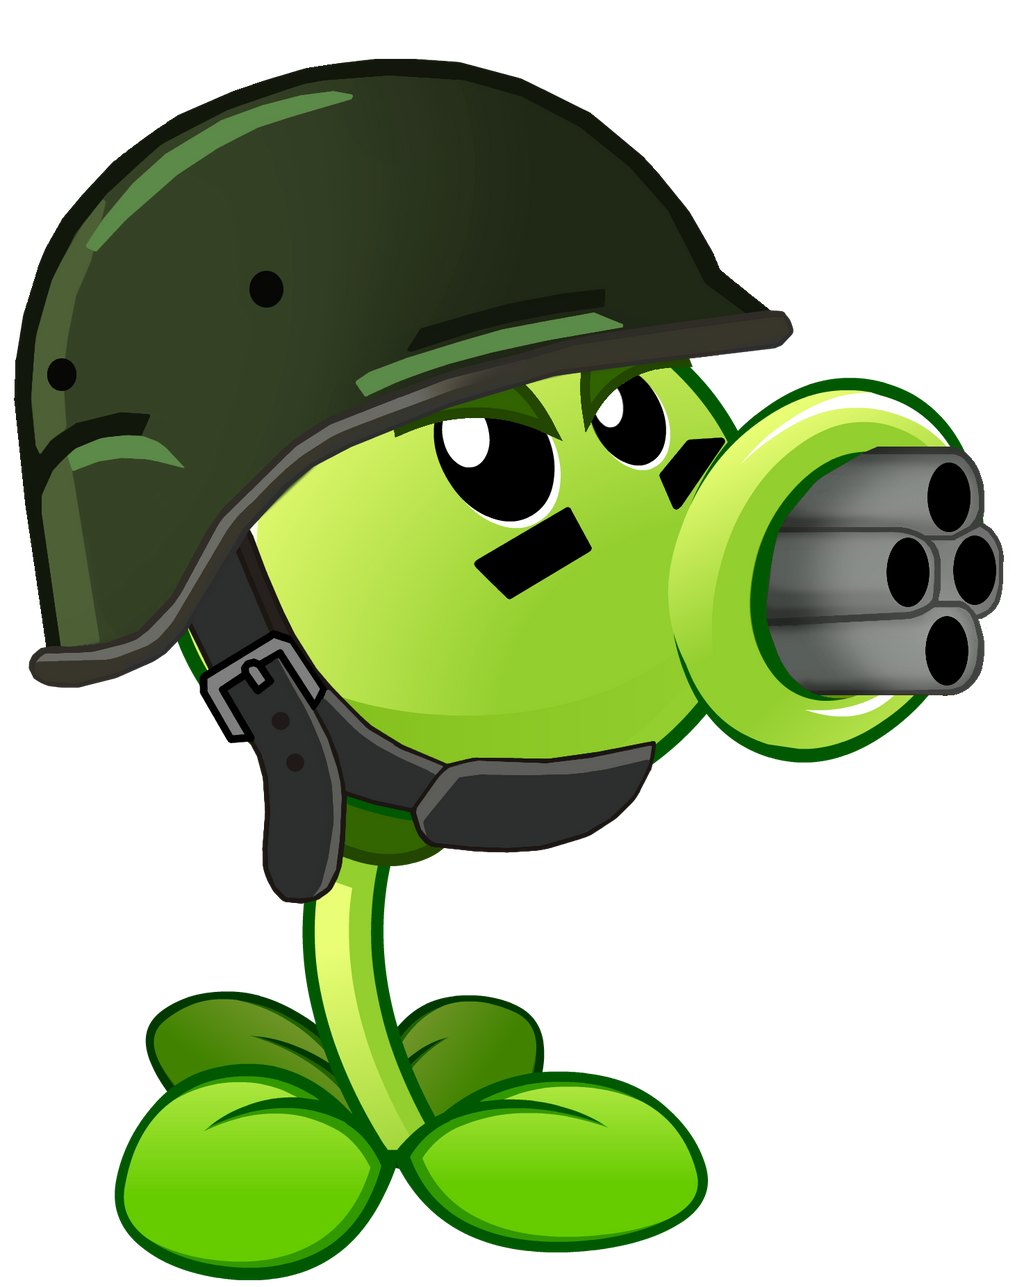 PvZGW Sewershot 2 in addition  likewise Image repeater snow pea also plants vs zombies 2 snow pea  r  by illustation16 d6xey86 also Hd threeeee furthermore 19h0t00gg3emi further Plants vs zombies coloring pages threepeater together with latest cb 20150418185559 additionally punny sunny   plants vs zombies   2 by nestly d664g92 moreover 250 cb 20160304005420 additionally the new plasma pea is  ing soon by plantsvszombies gw d7p2cy6. on plants vs zombies garden warfare plasma pea coloring pages